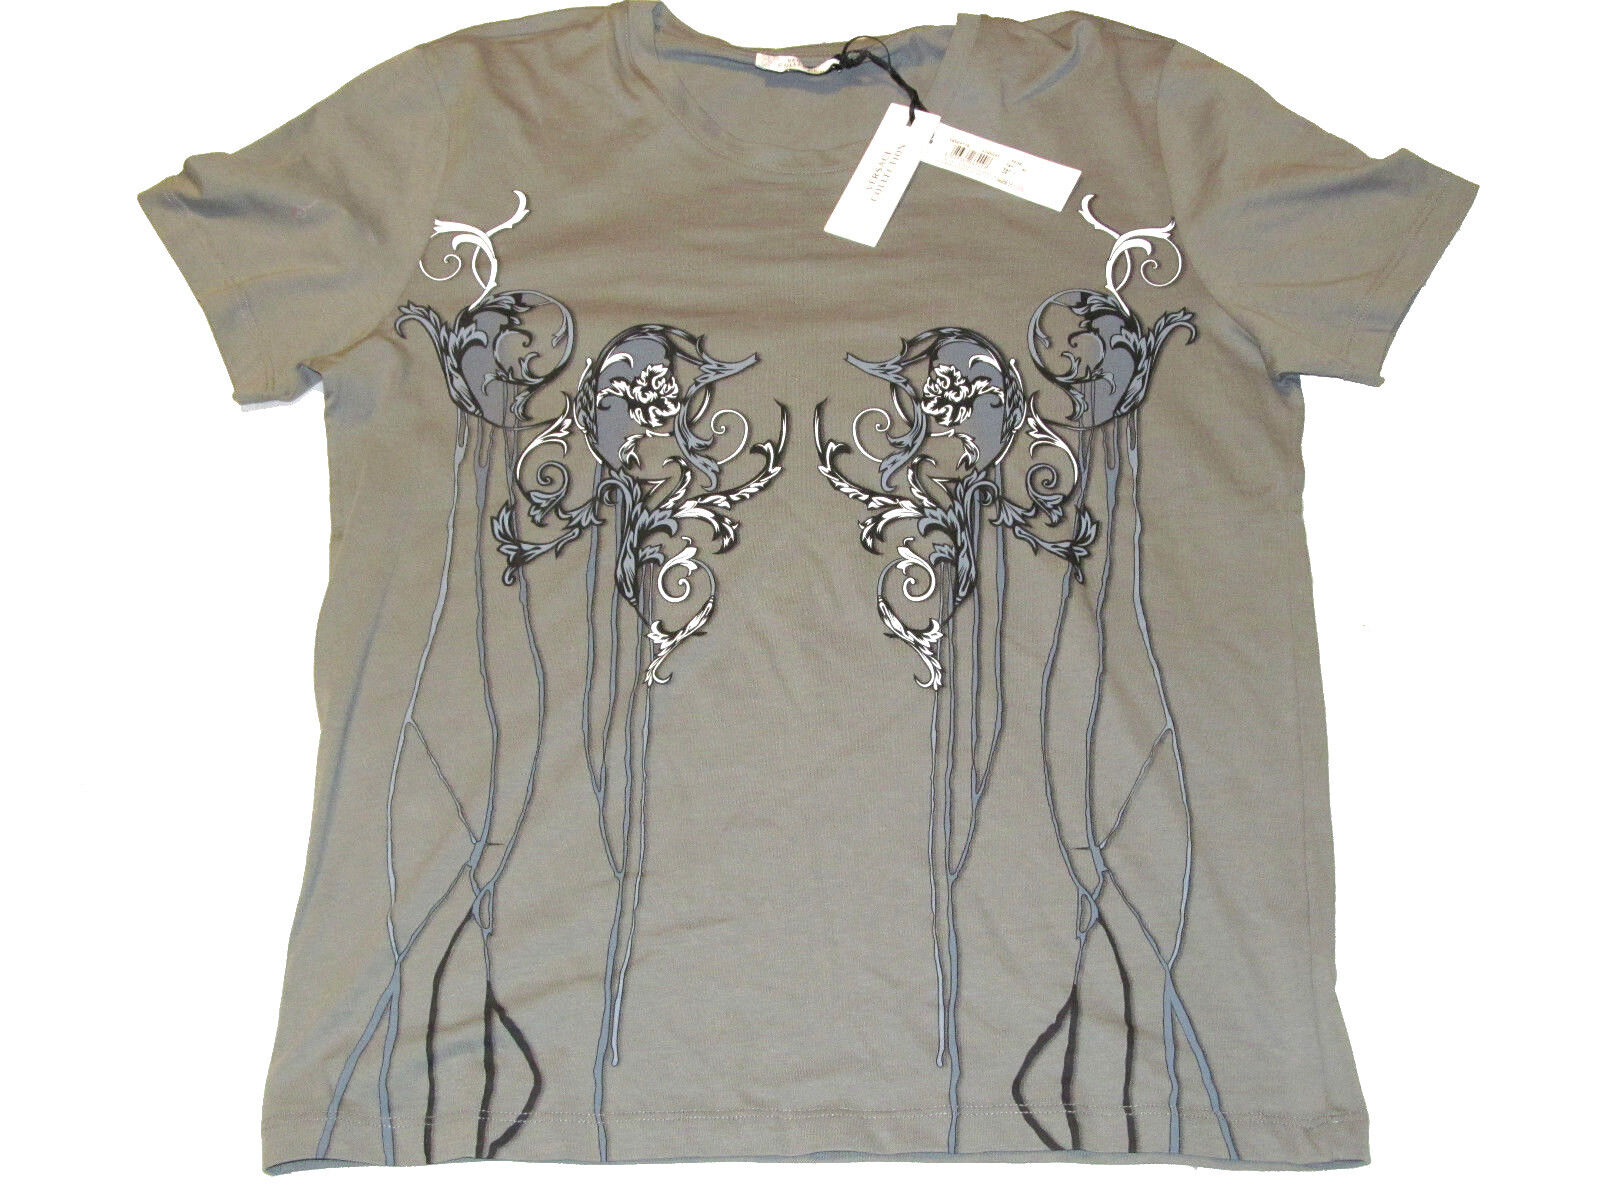 NWT Versace Collection Girocollo grey Pastello Fant T-Shirt Size XL V800471S